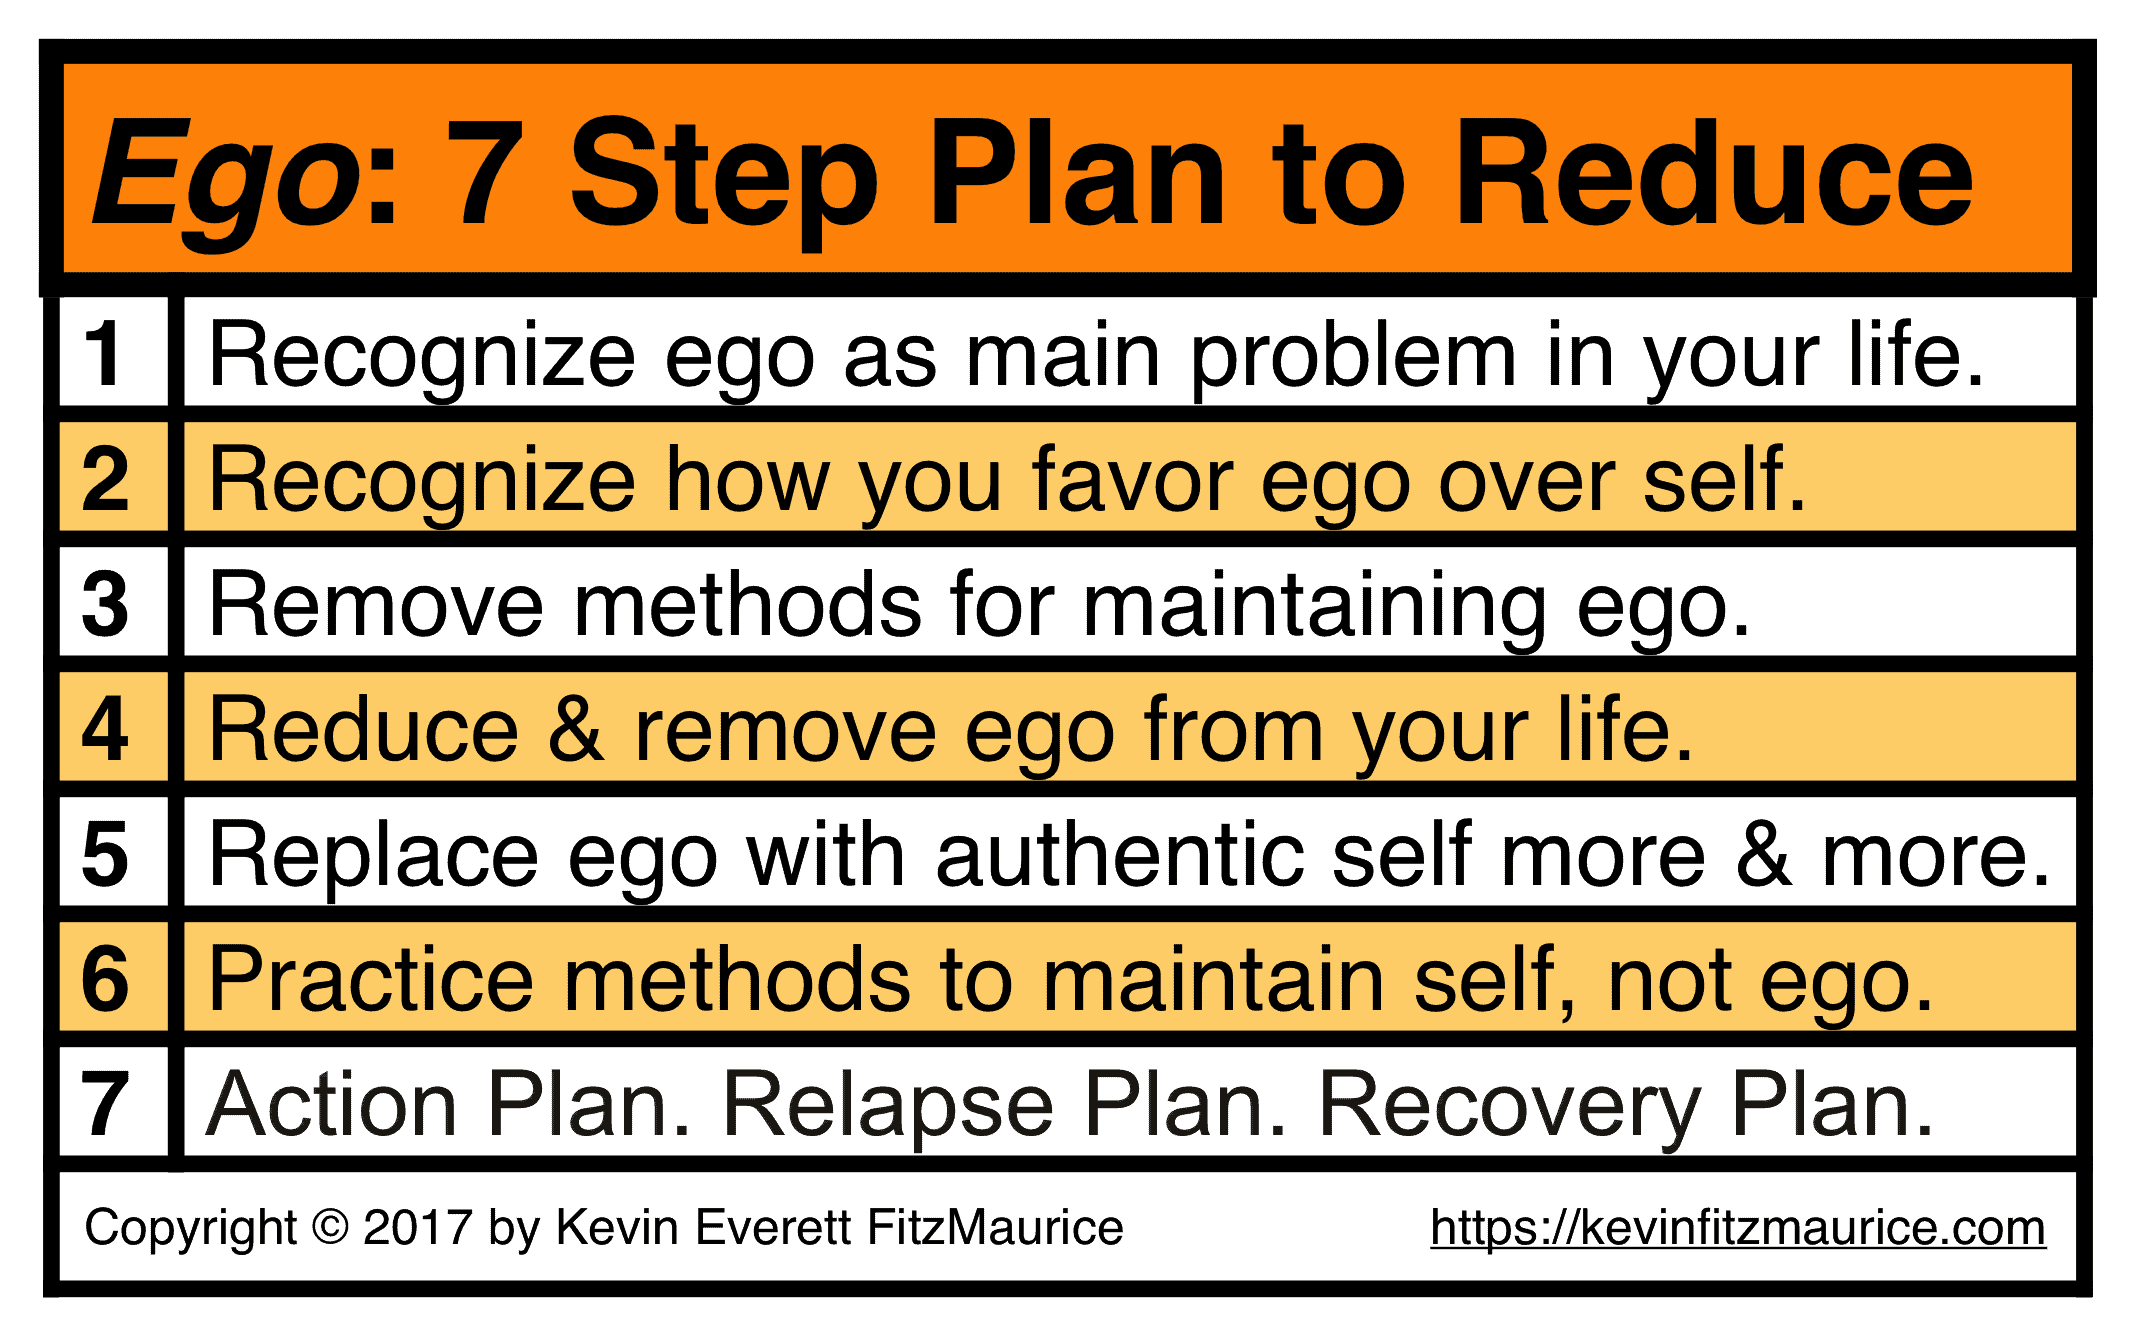 7 Step Plan to Reduce Ego